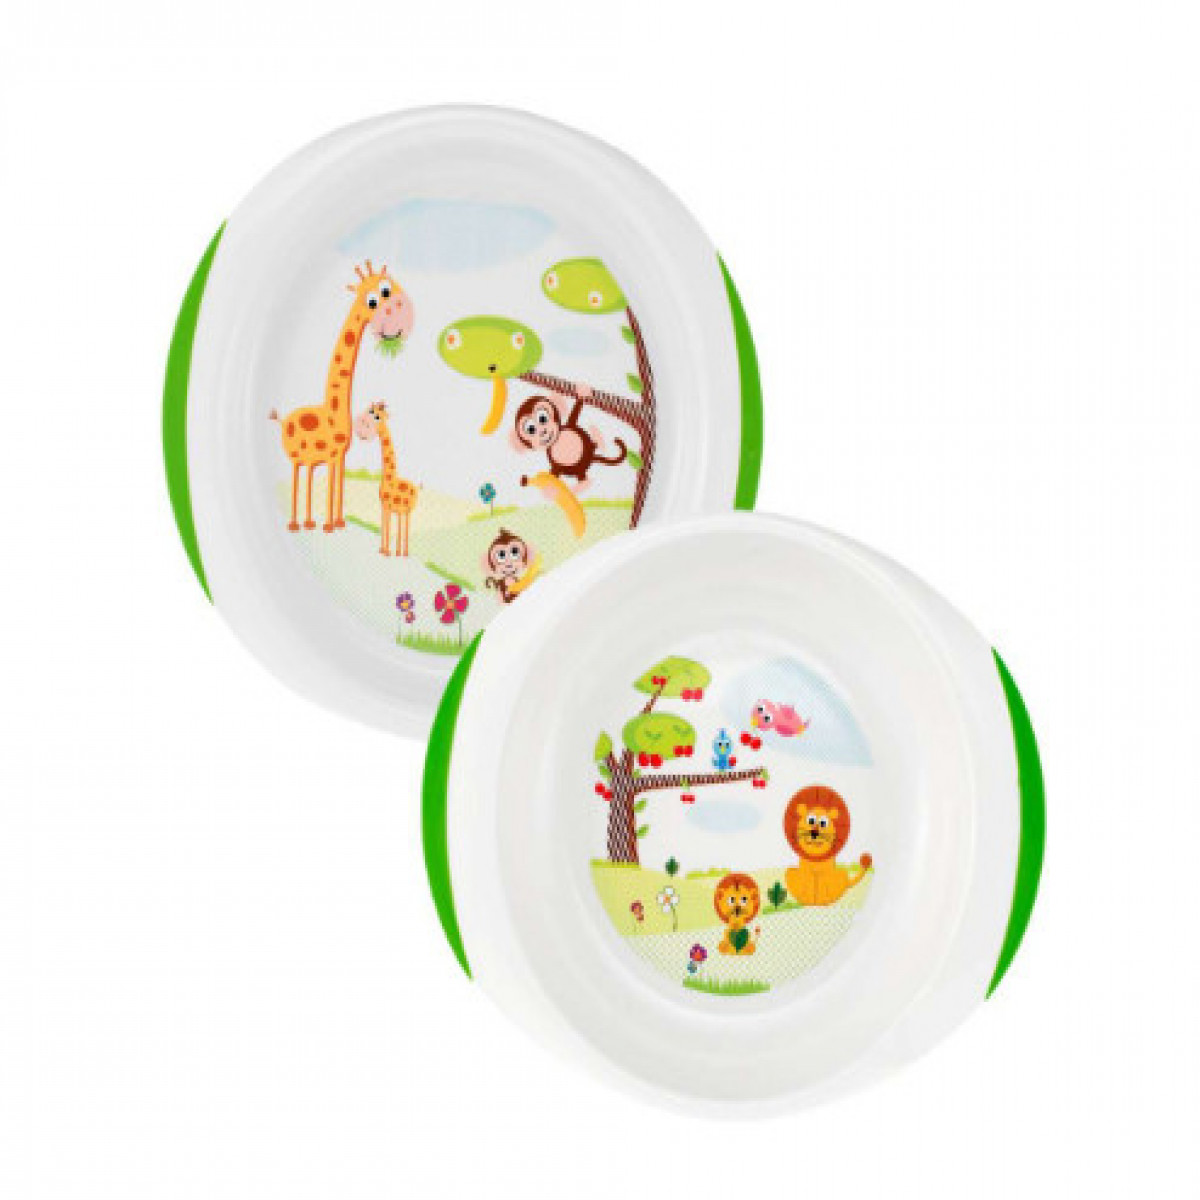 Set plato playo y Hondo Chicco blanco